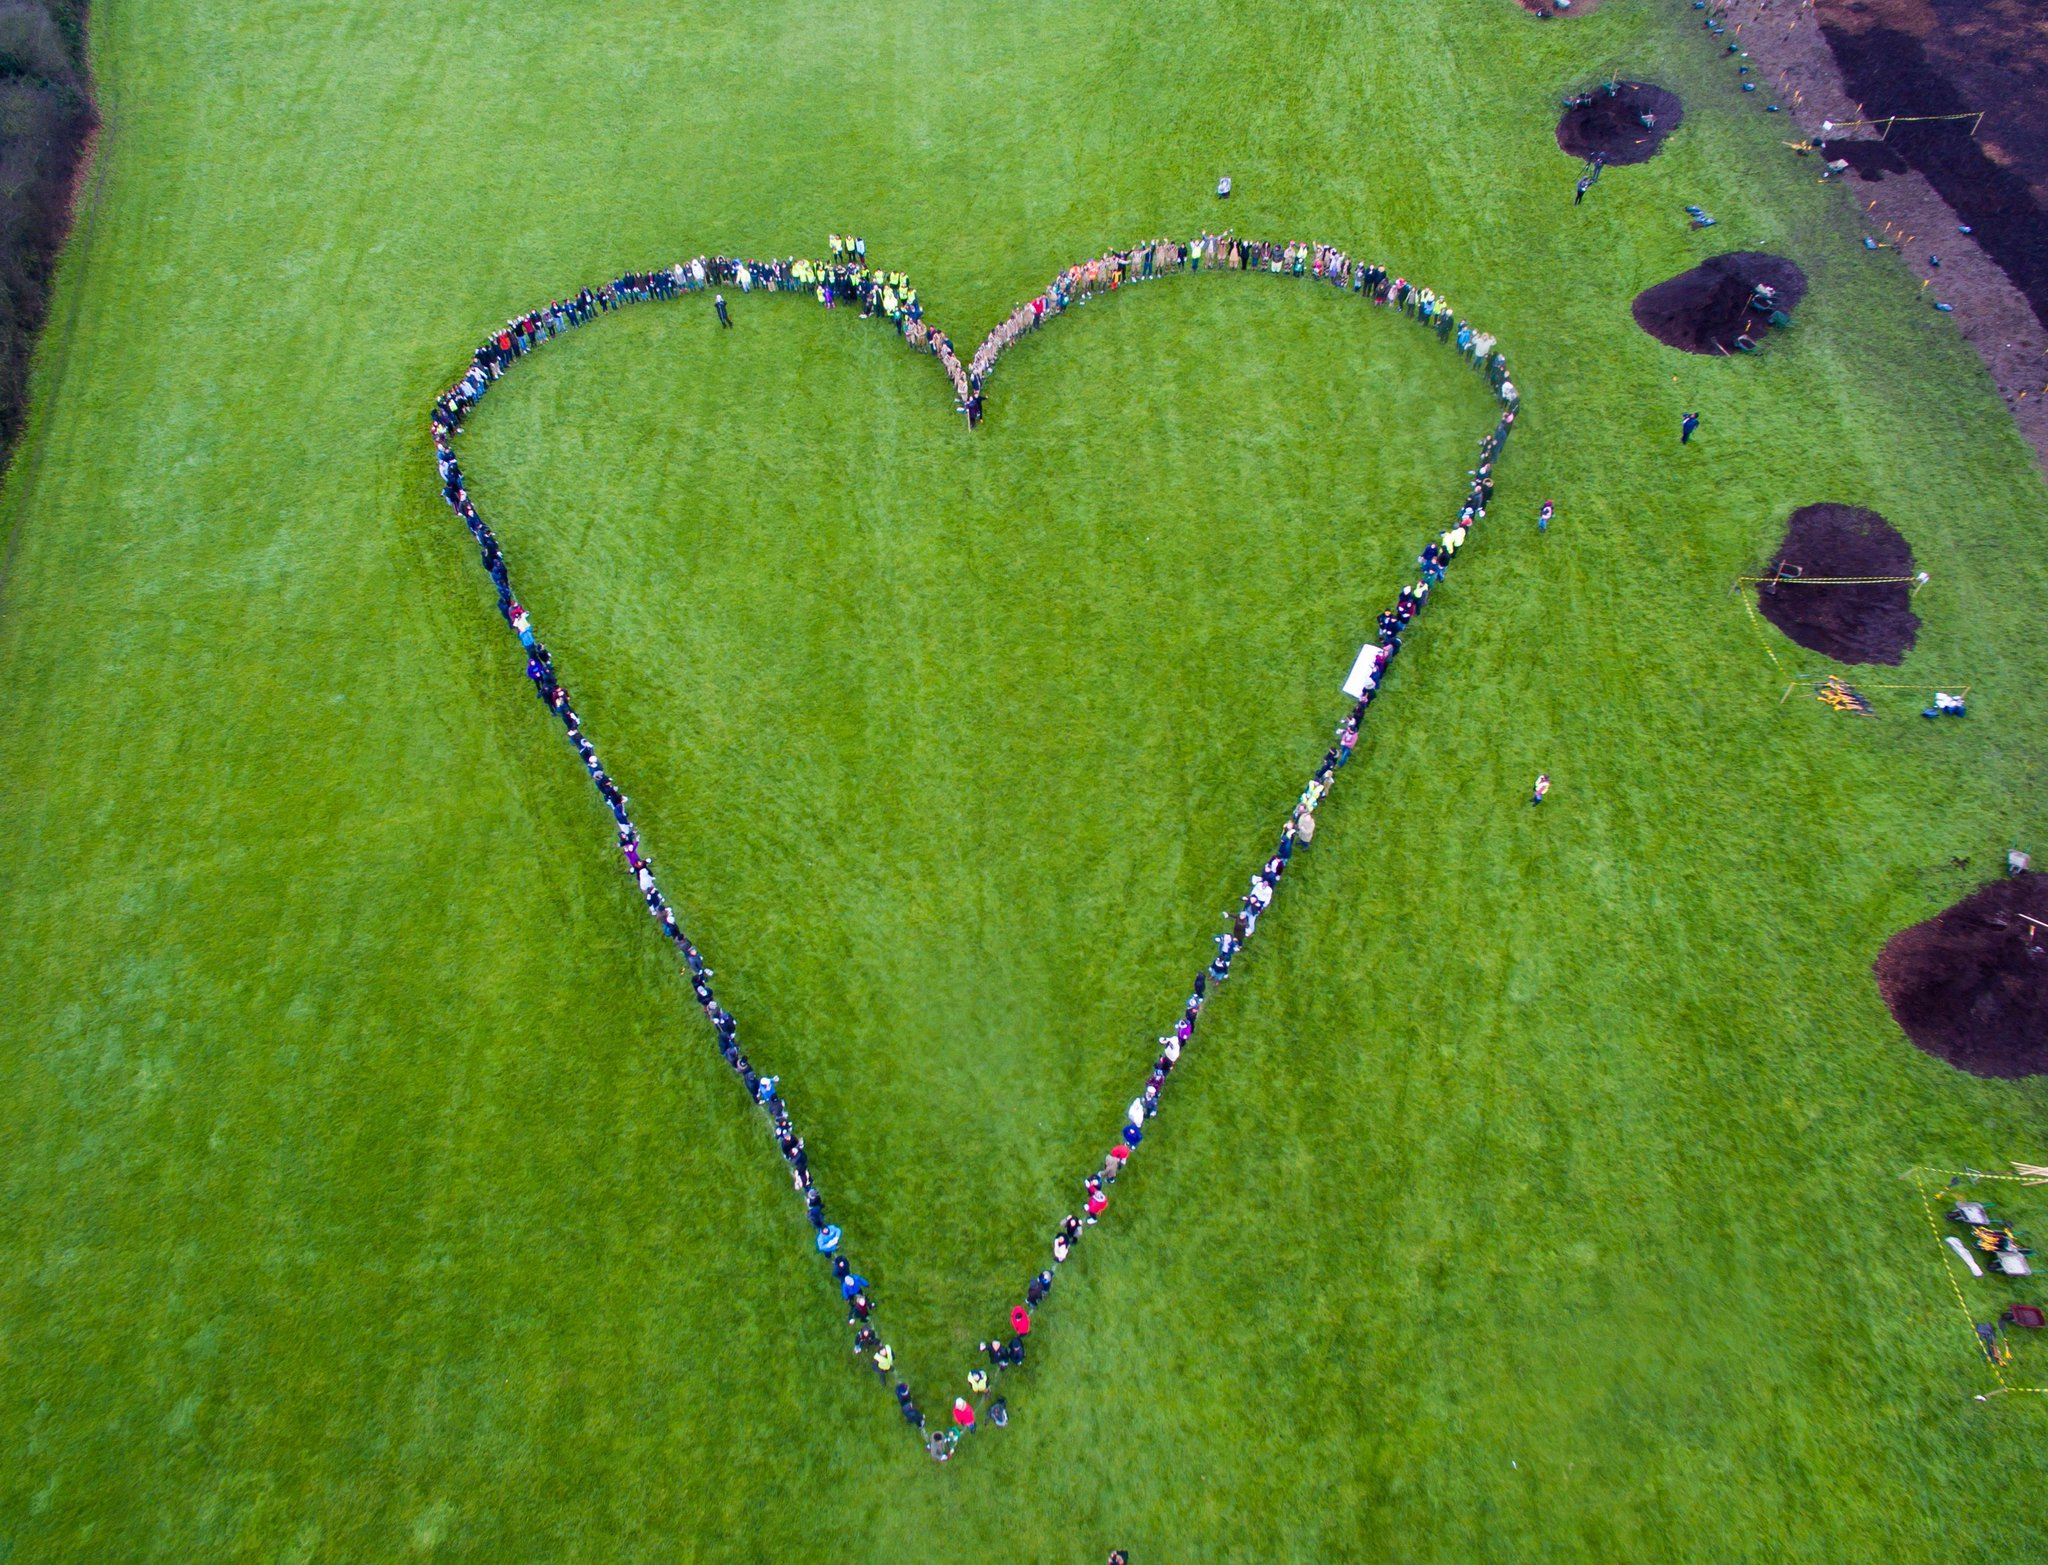 Thanks to 300+ volunteers who gave up their Saturday to #showthelove and plant 10,000 trees in Southall @UnileverUKI https://t.co/zjhslbV91v